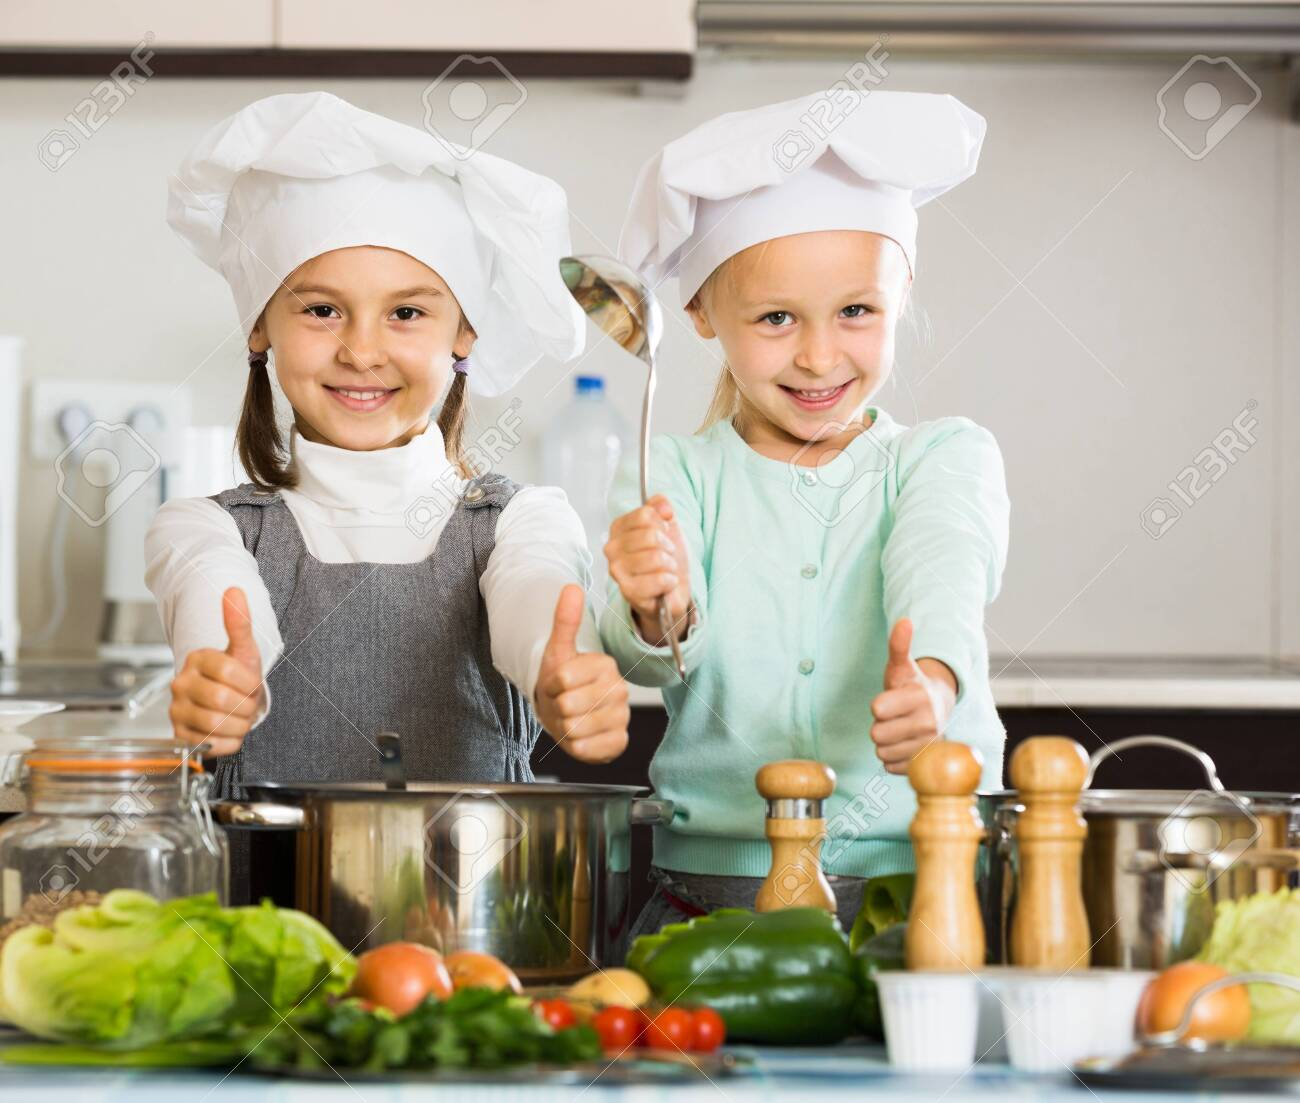 Two little american girls preparing vegetables and smiling indoors - 124547447